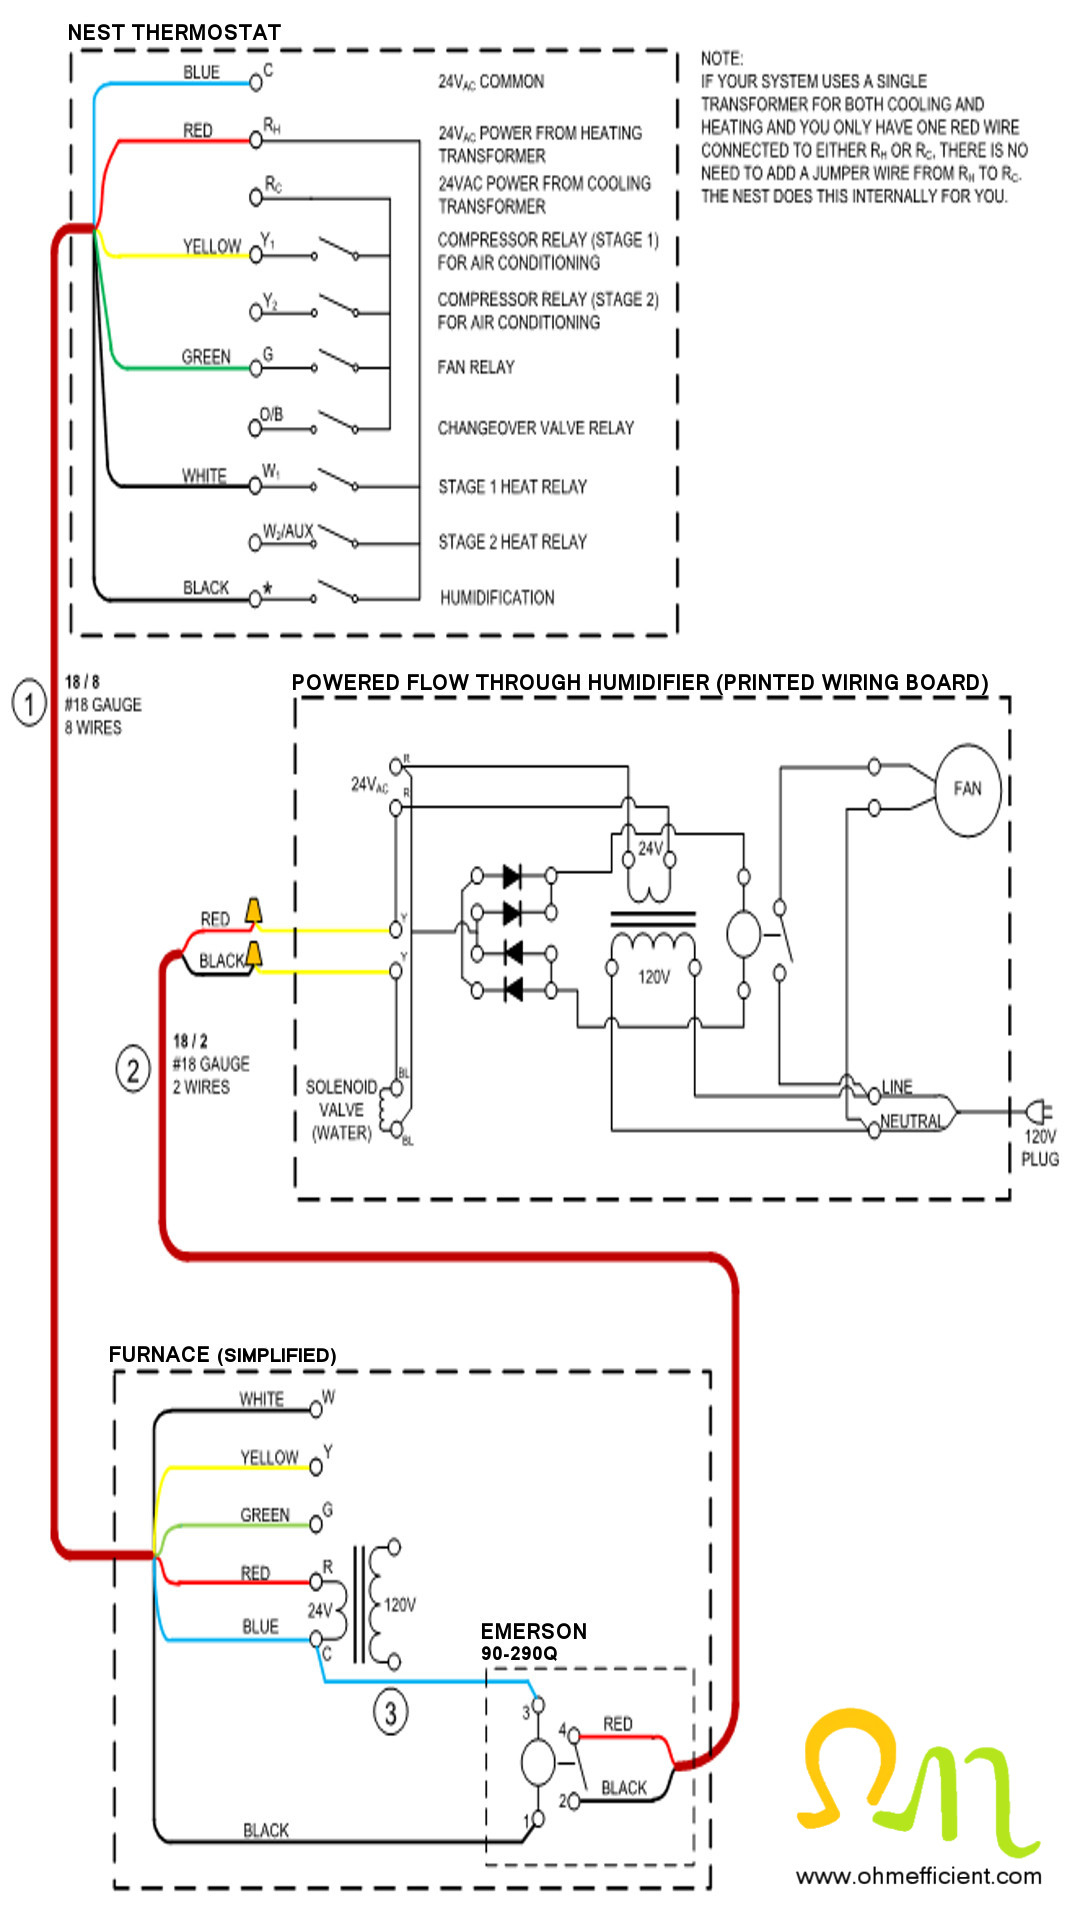 How To Connect & Setup A Nest Thermostat To Function As A Humidistat - Nest Stat Wiring Diagram